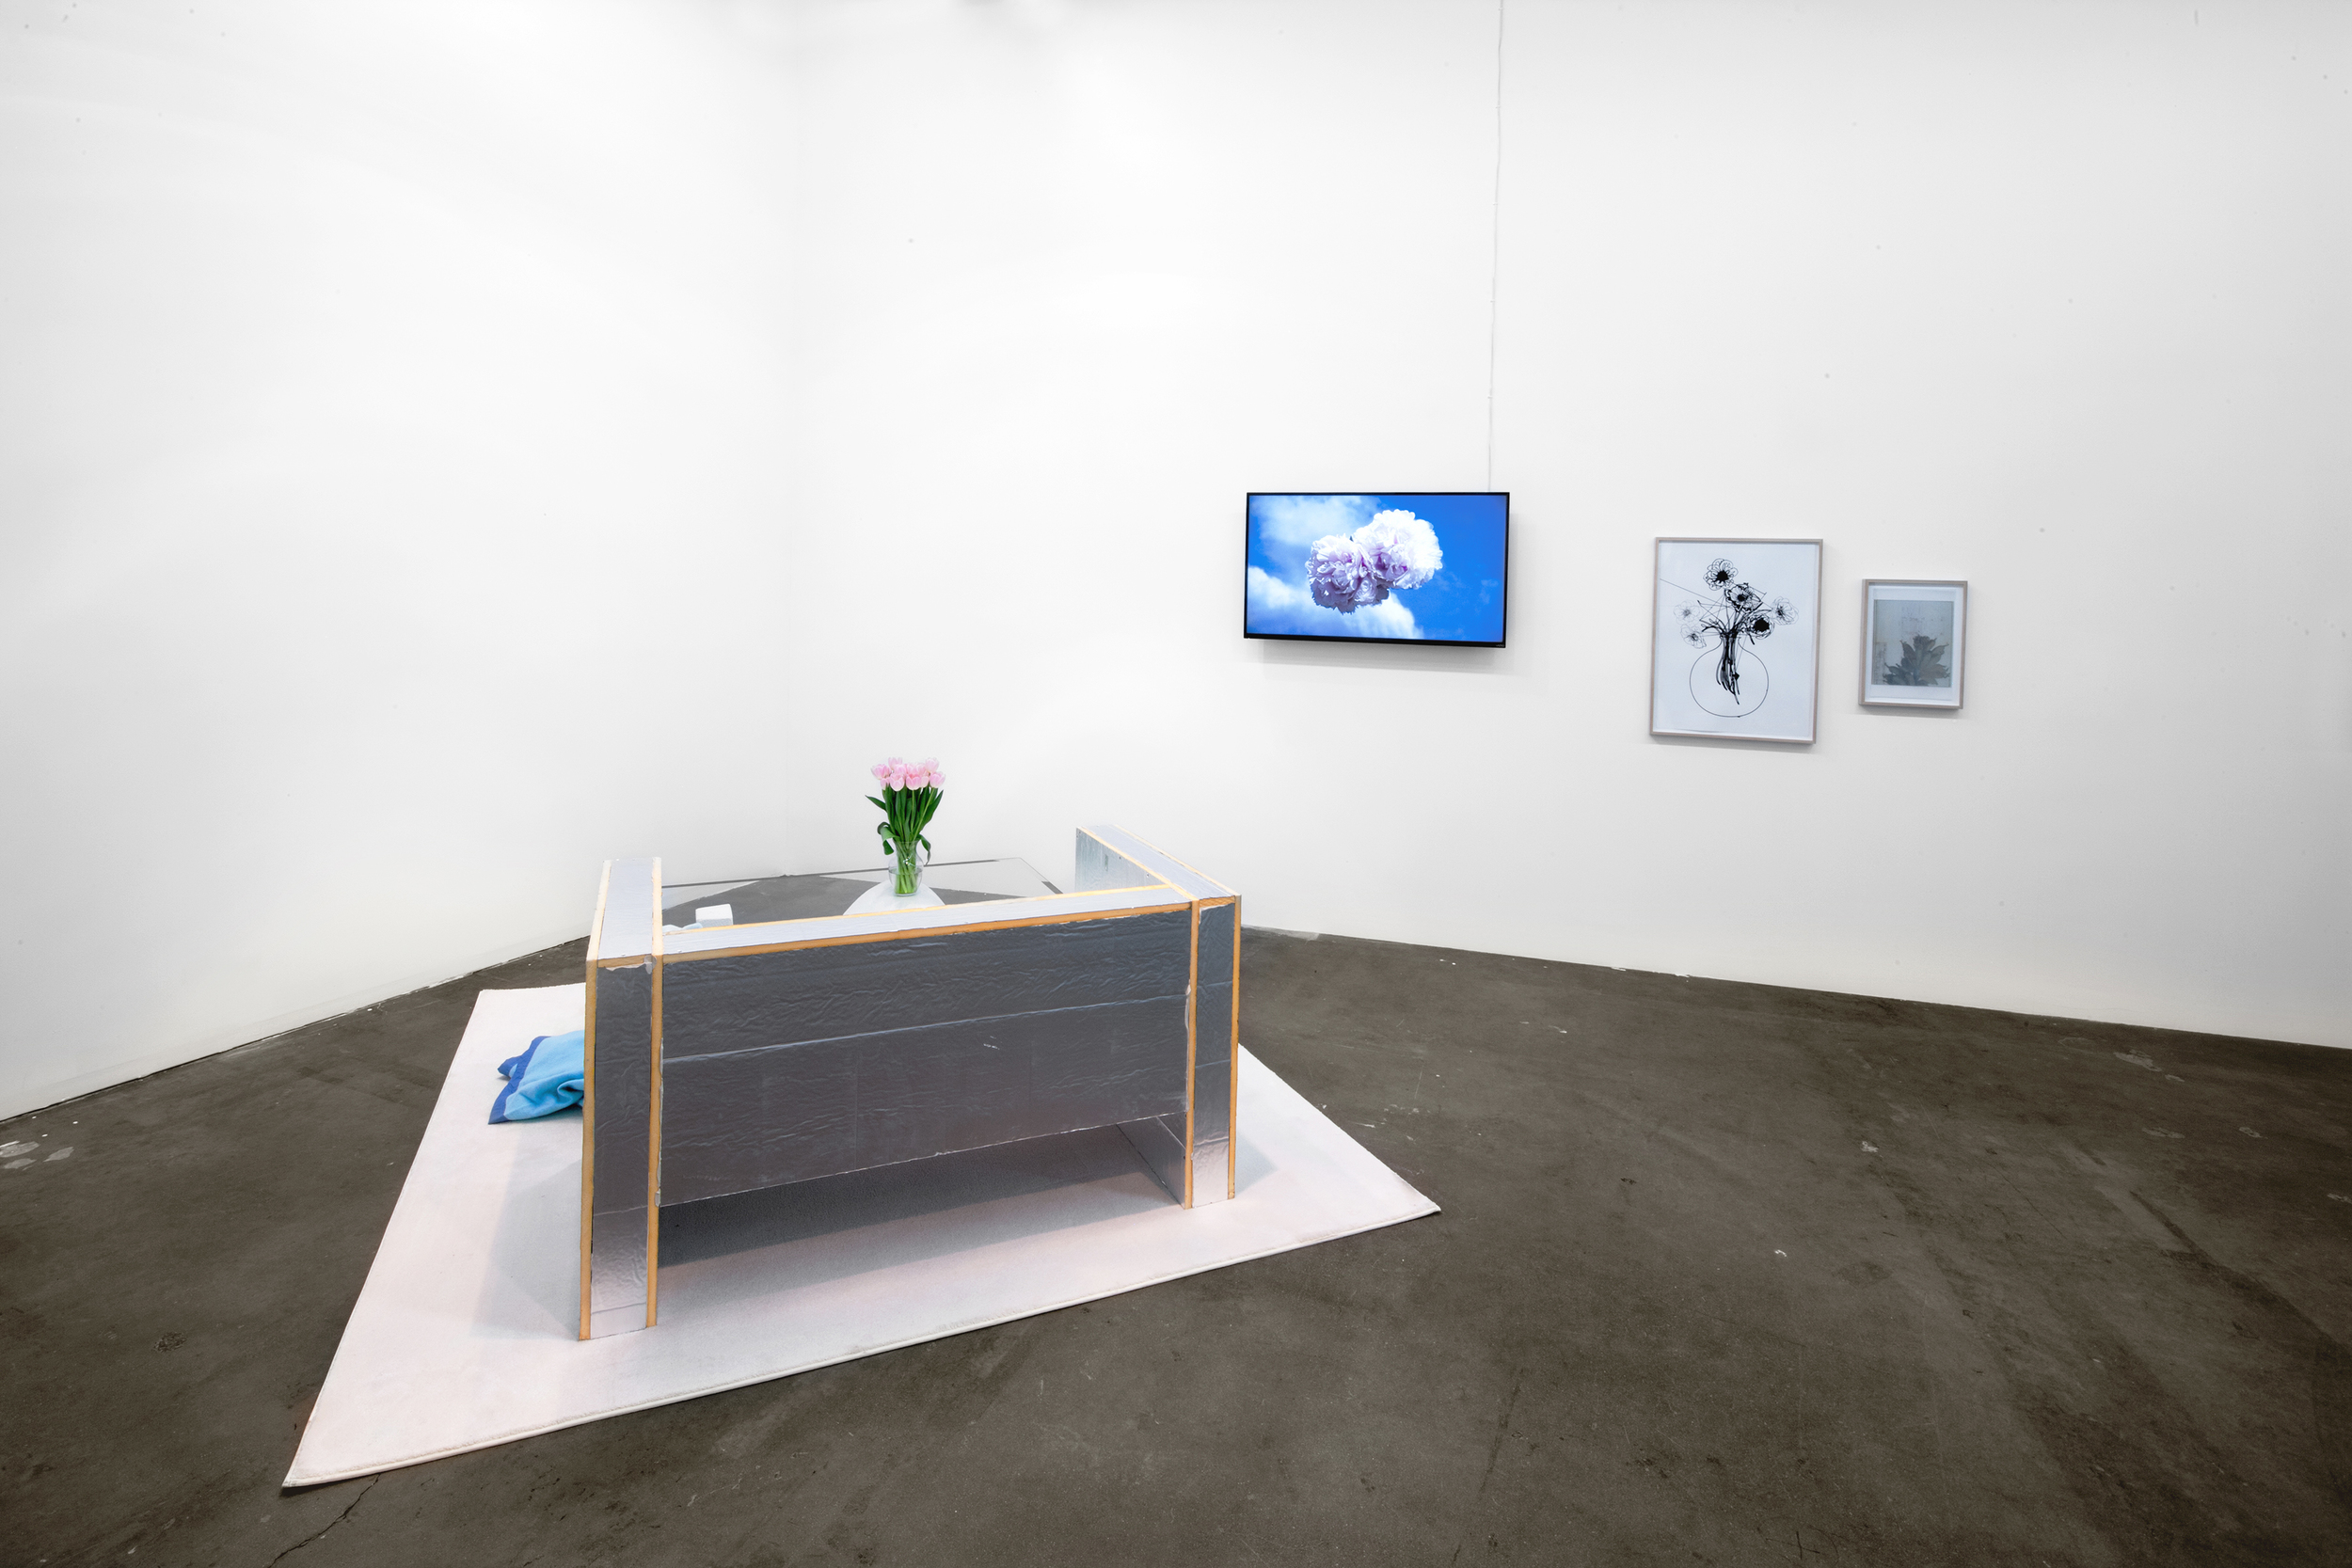 TMRBenefitExhibition2015.SilenceofOrdinaryThings6.jpg